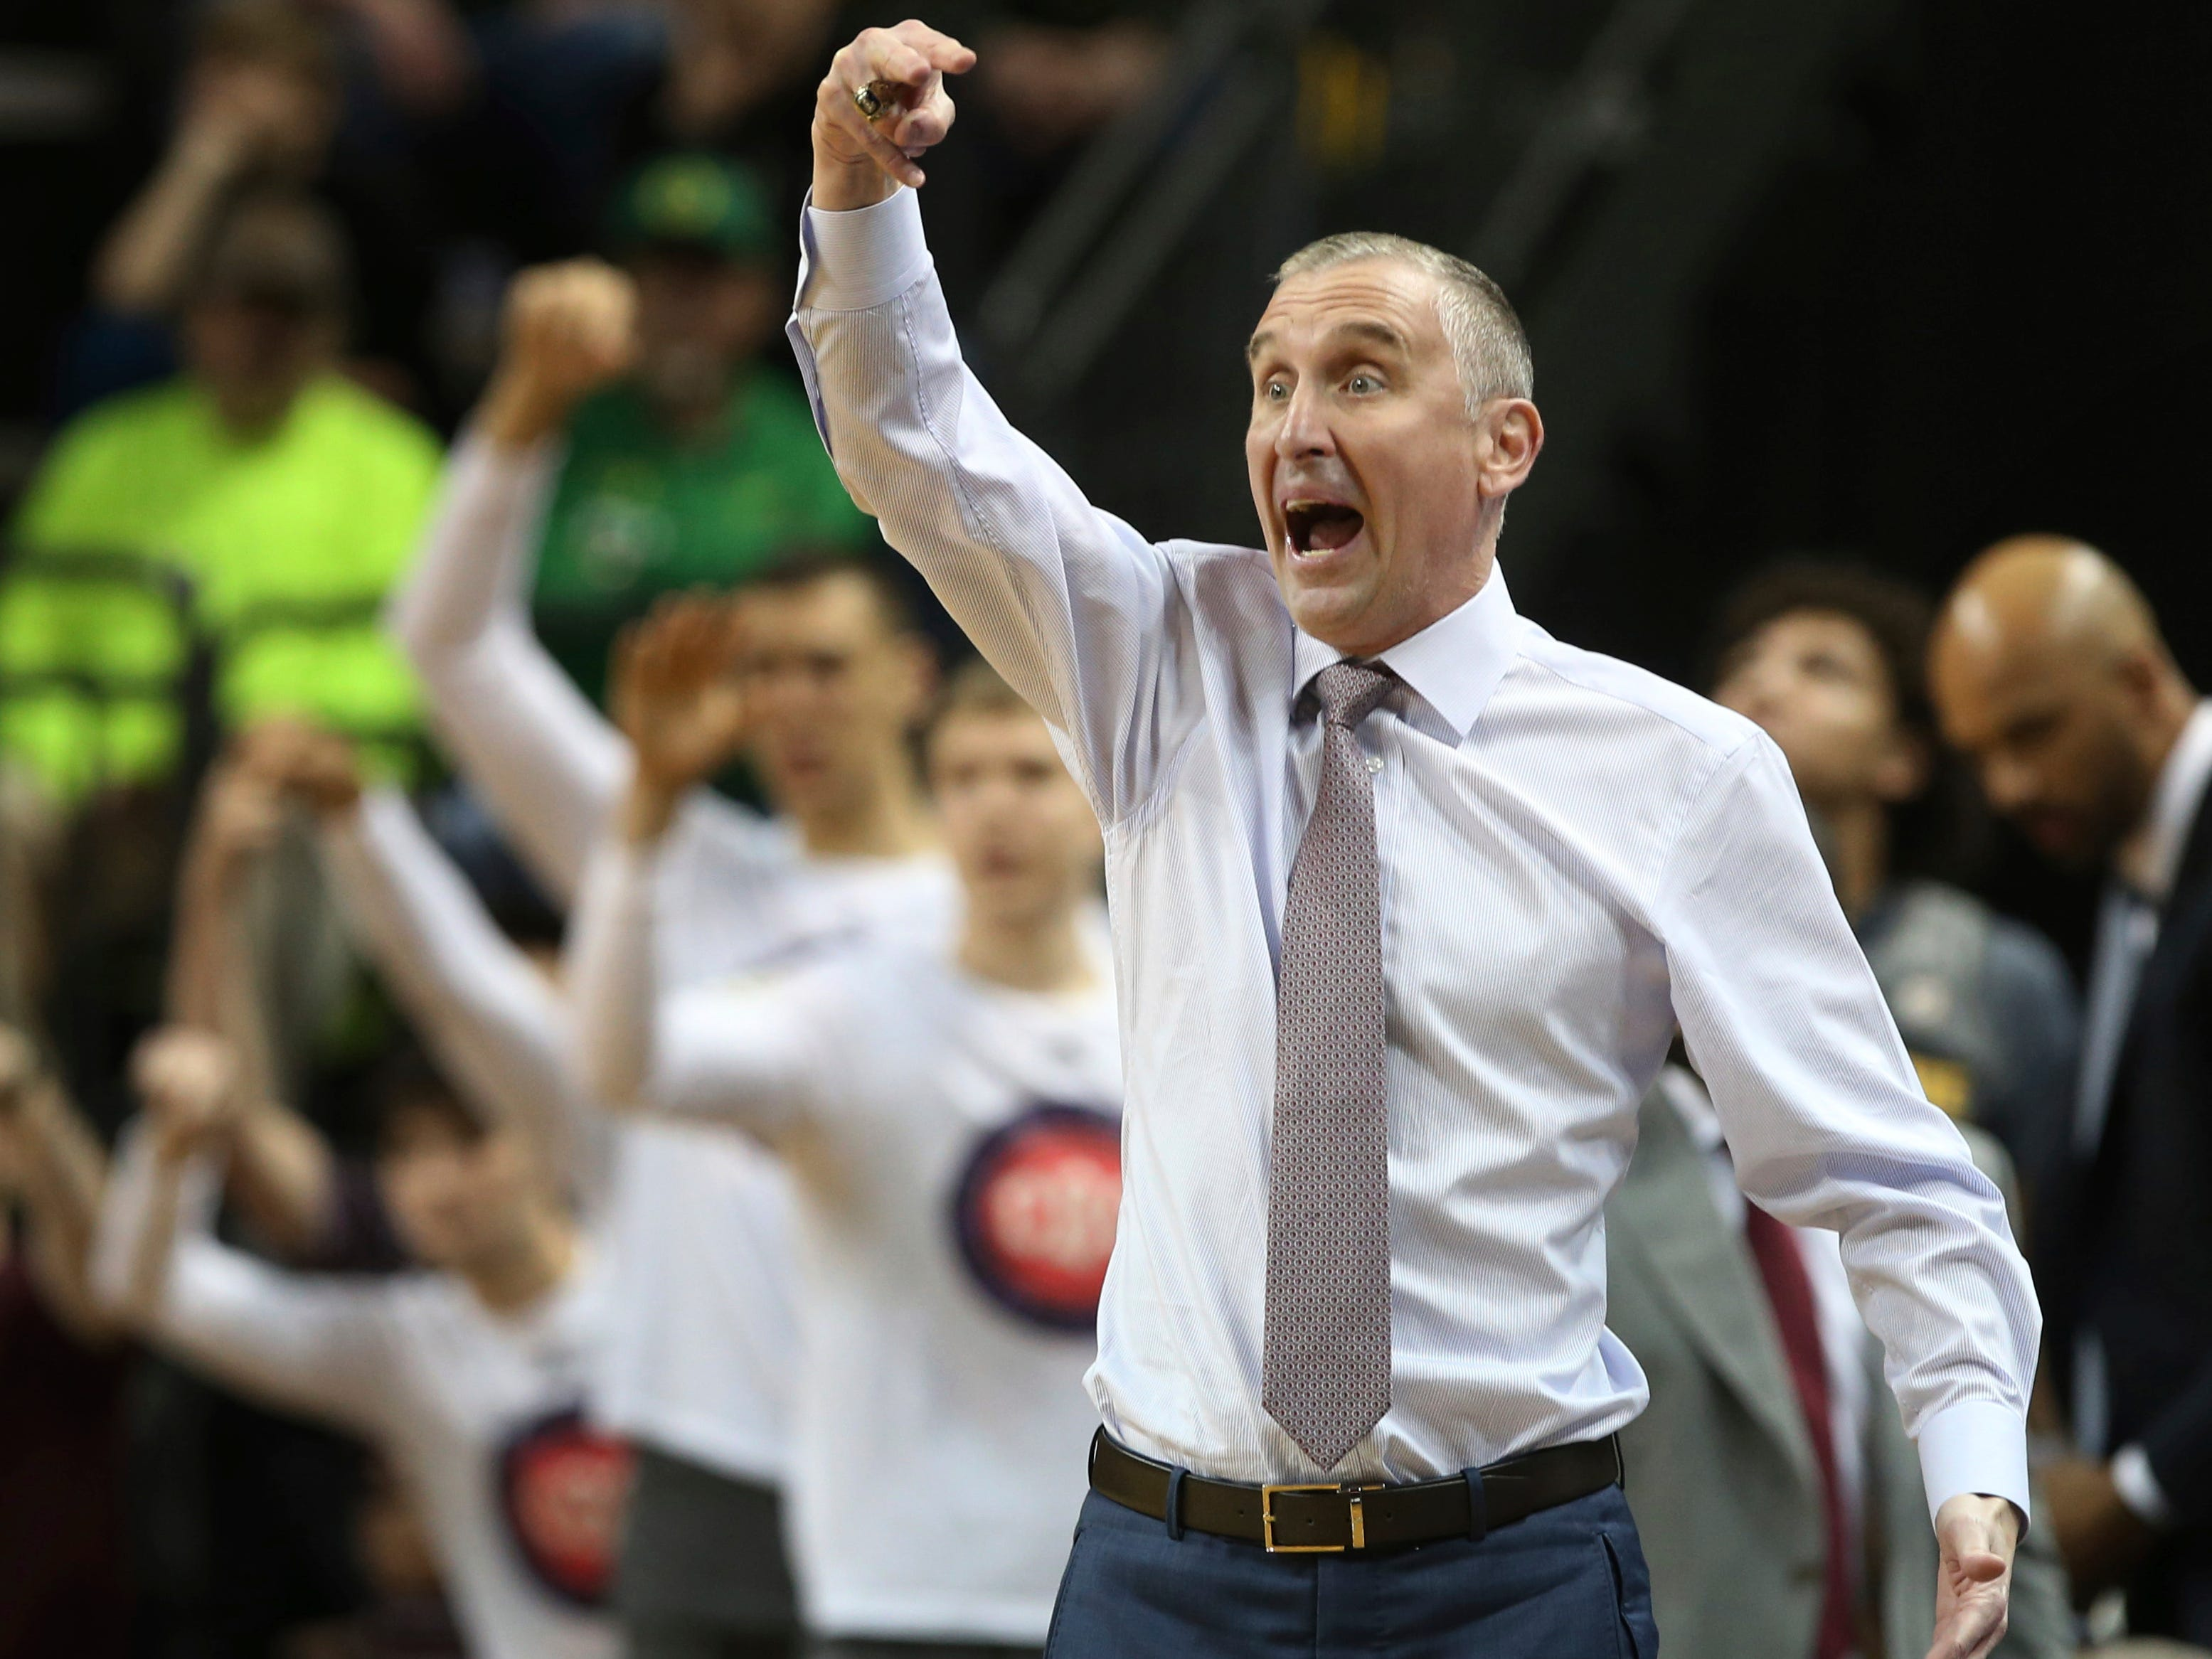 Arizona State coach Bobby Hurley gestures to his team during the first half of an NCAA college basketball game against Oregon on Thursday, Feb. 28, 2019, in Eugene, Ore.